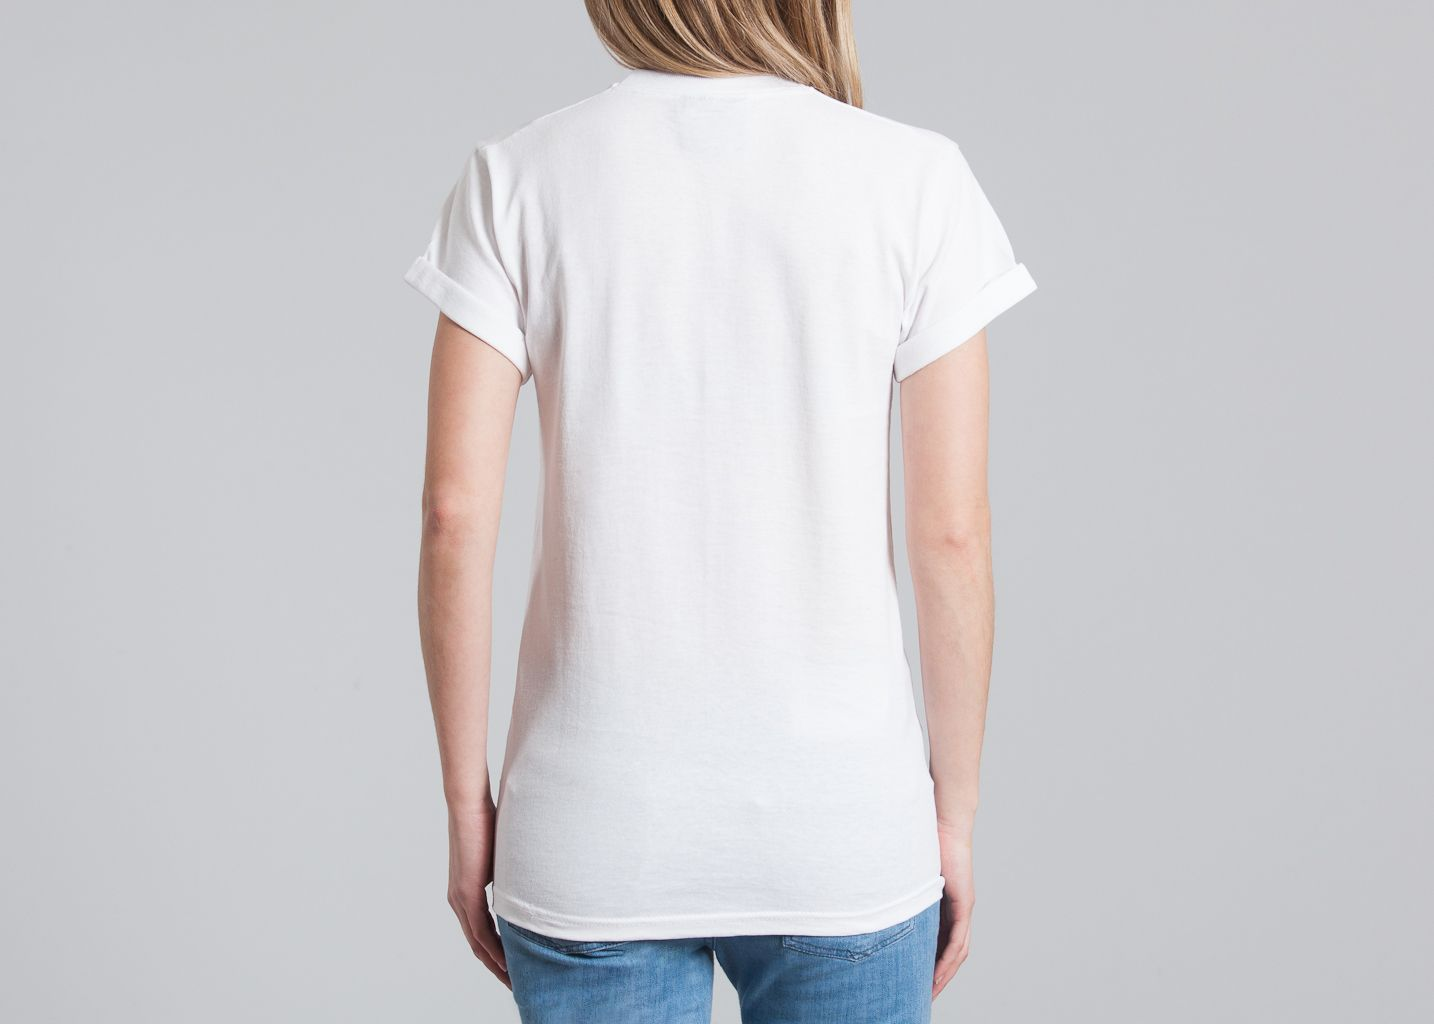 Tshirt The Dude - Maison Labiche